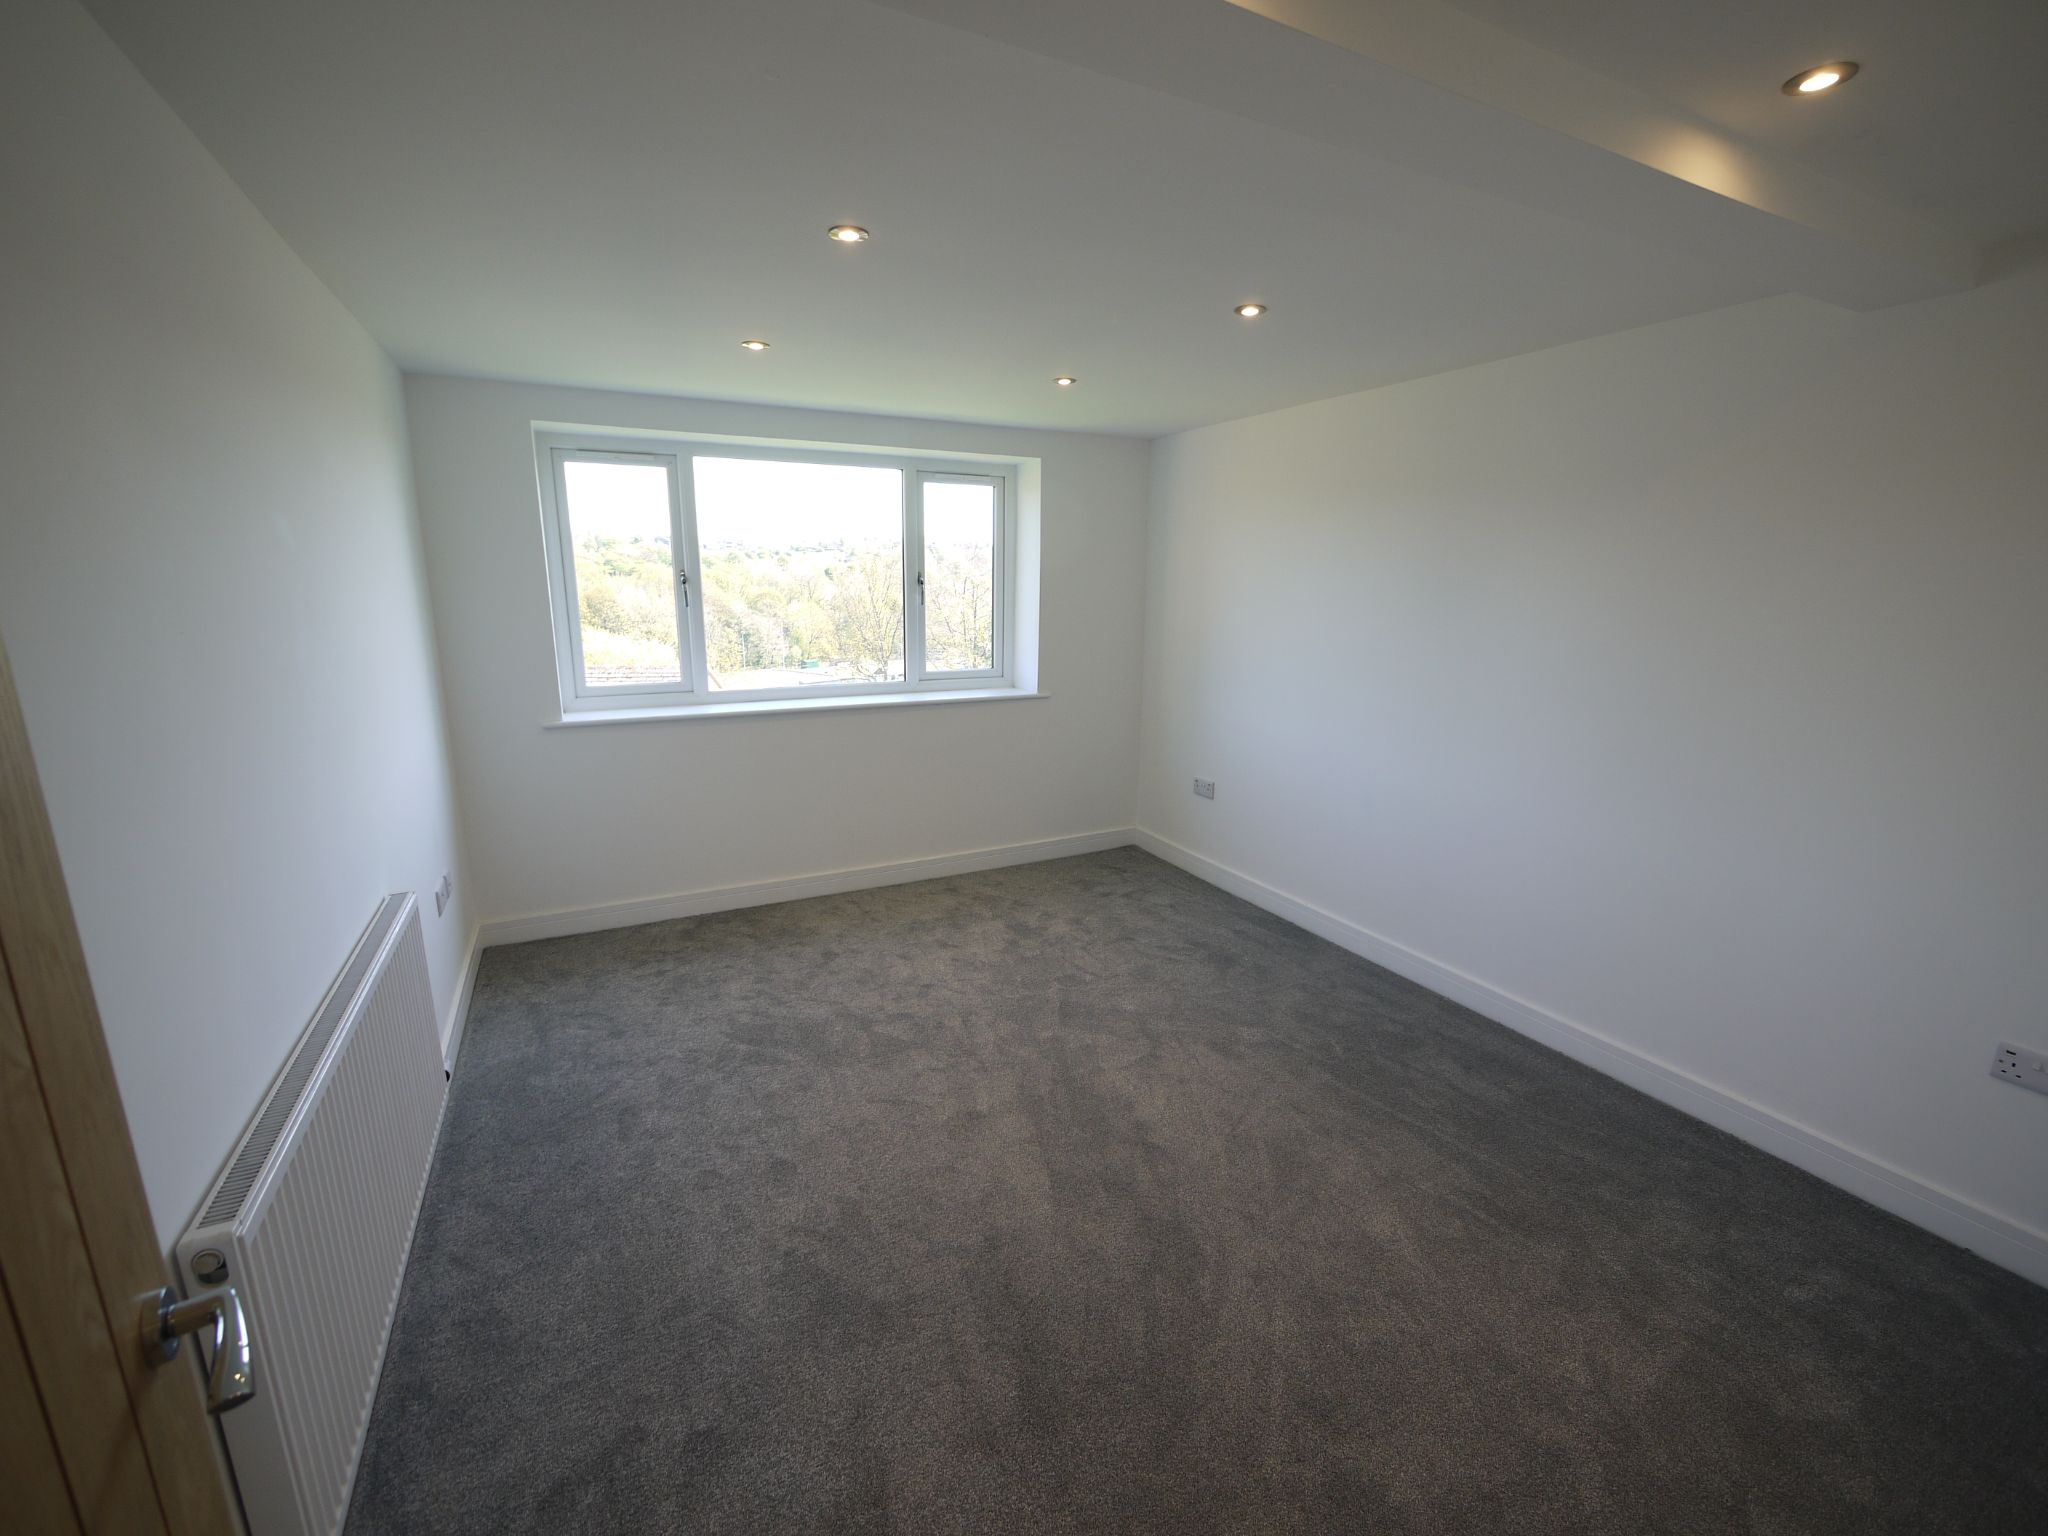 3 bedroom detached house For Sale in Brighouse - Bed 2.